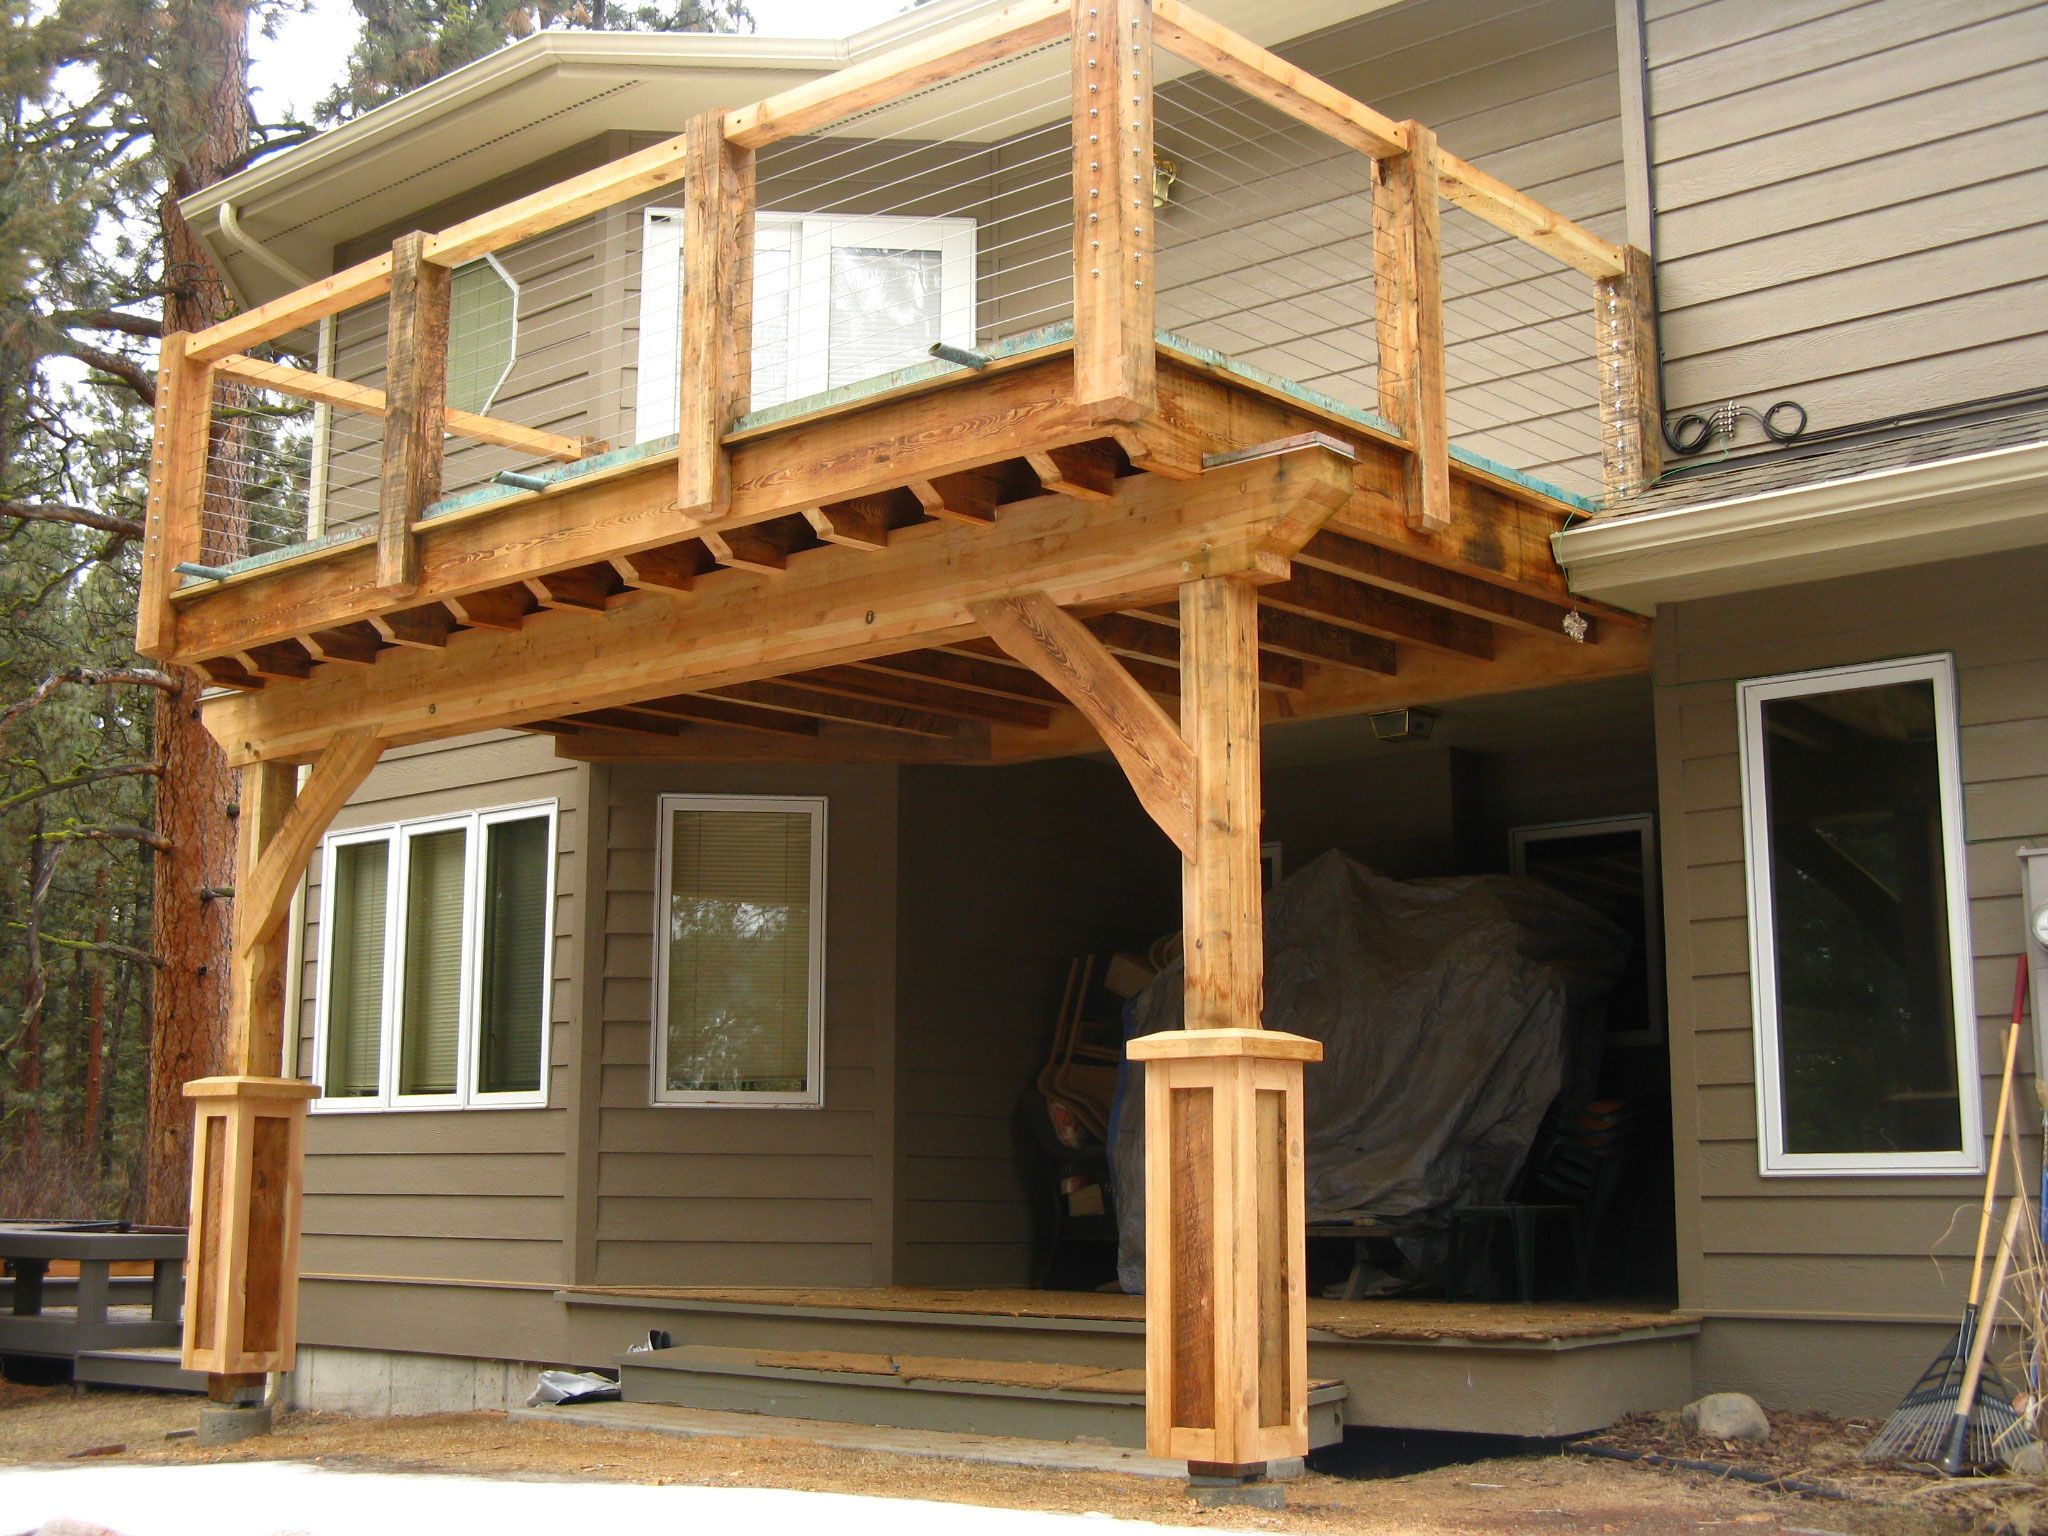 Panofish » Building a Shed under a Deck |Roof Deck Framing Plans